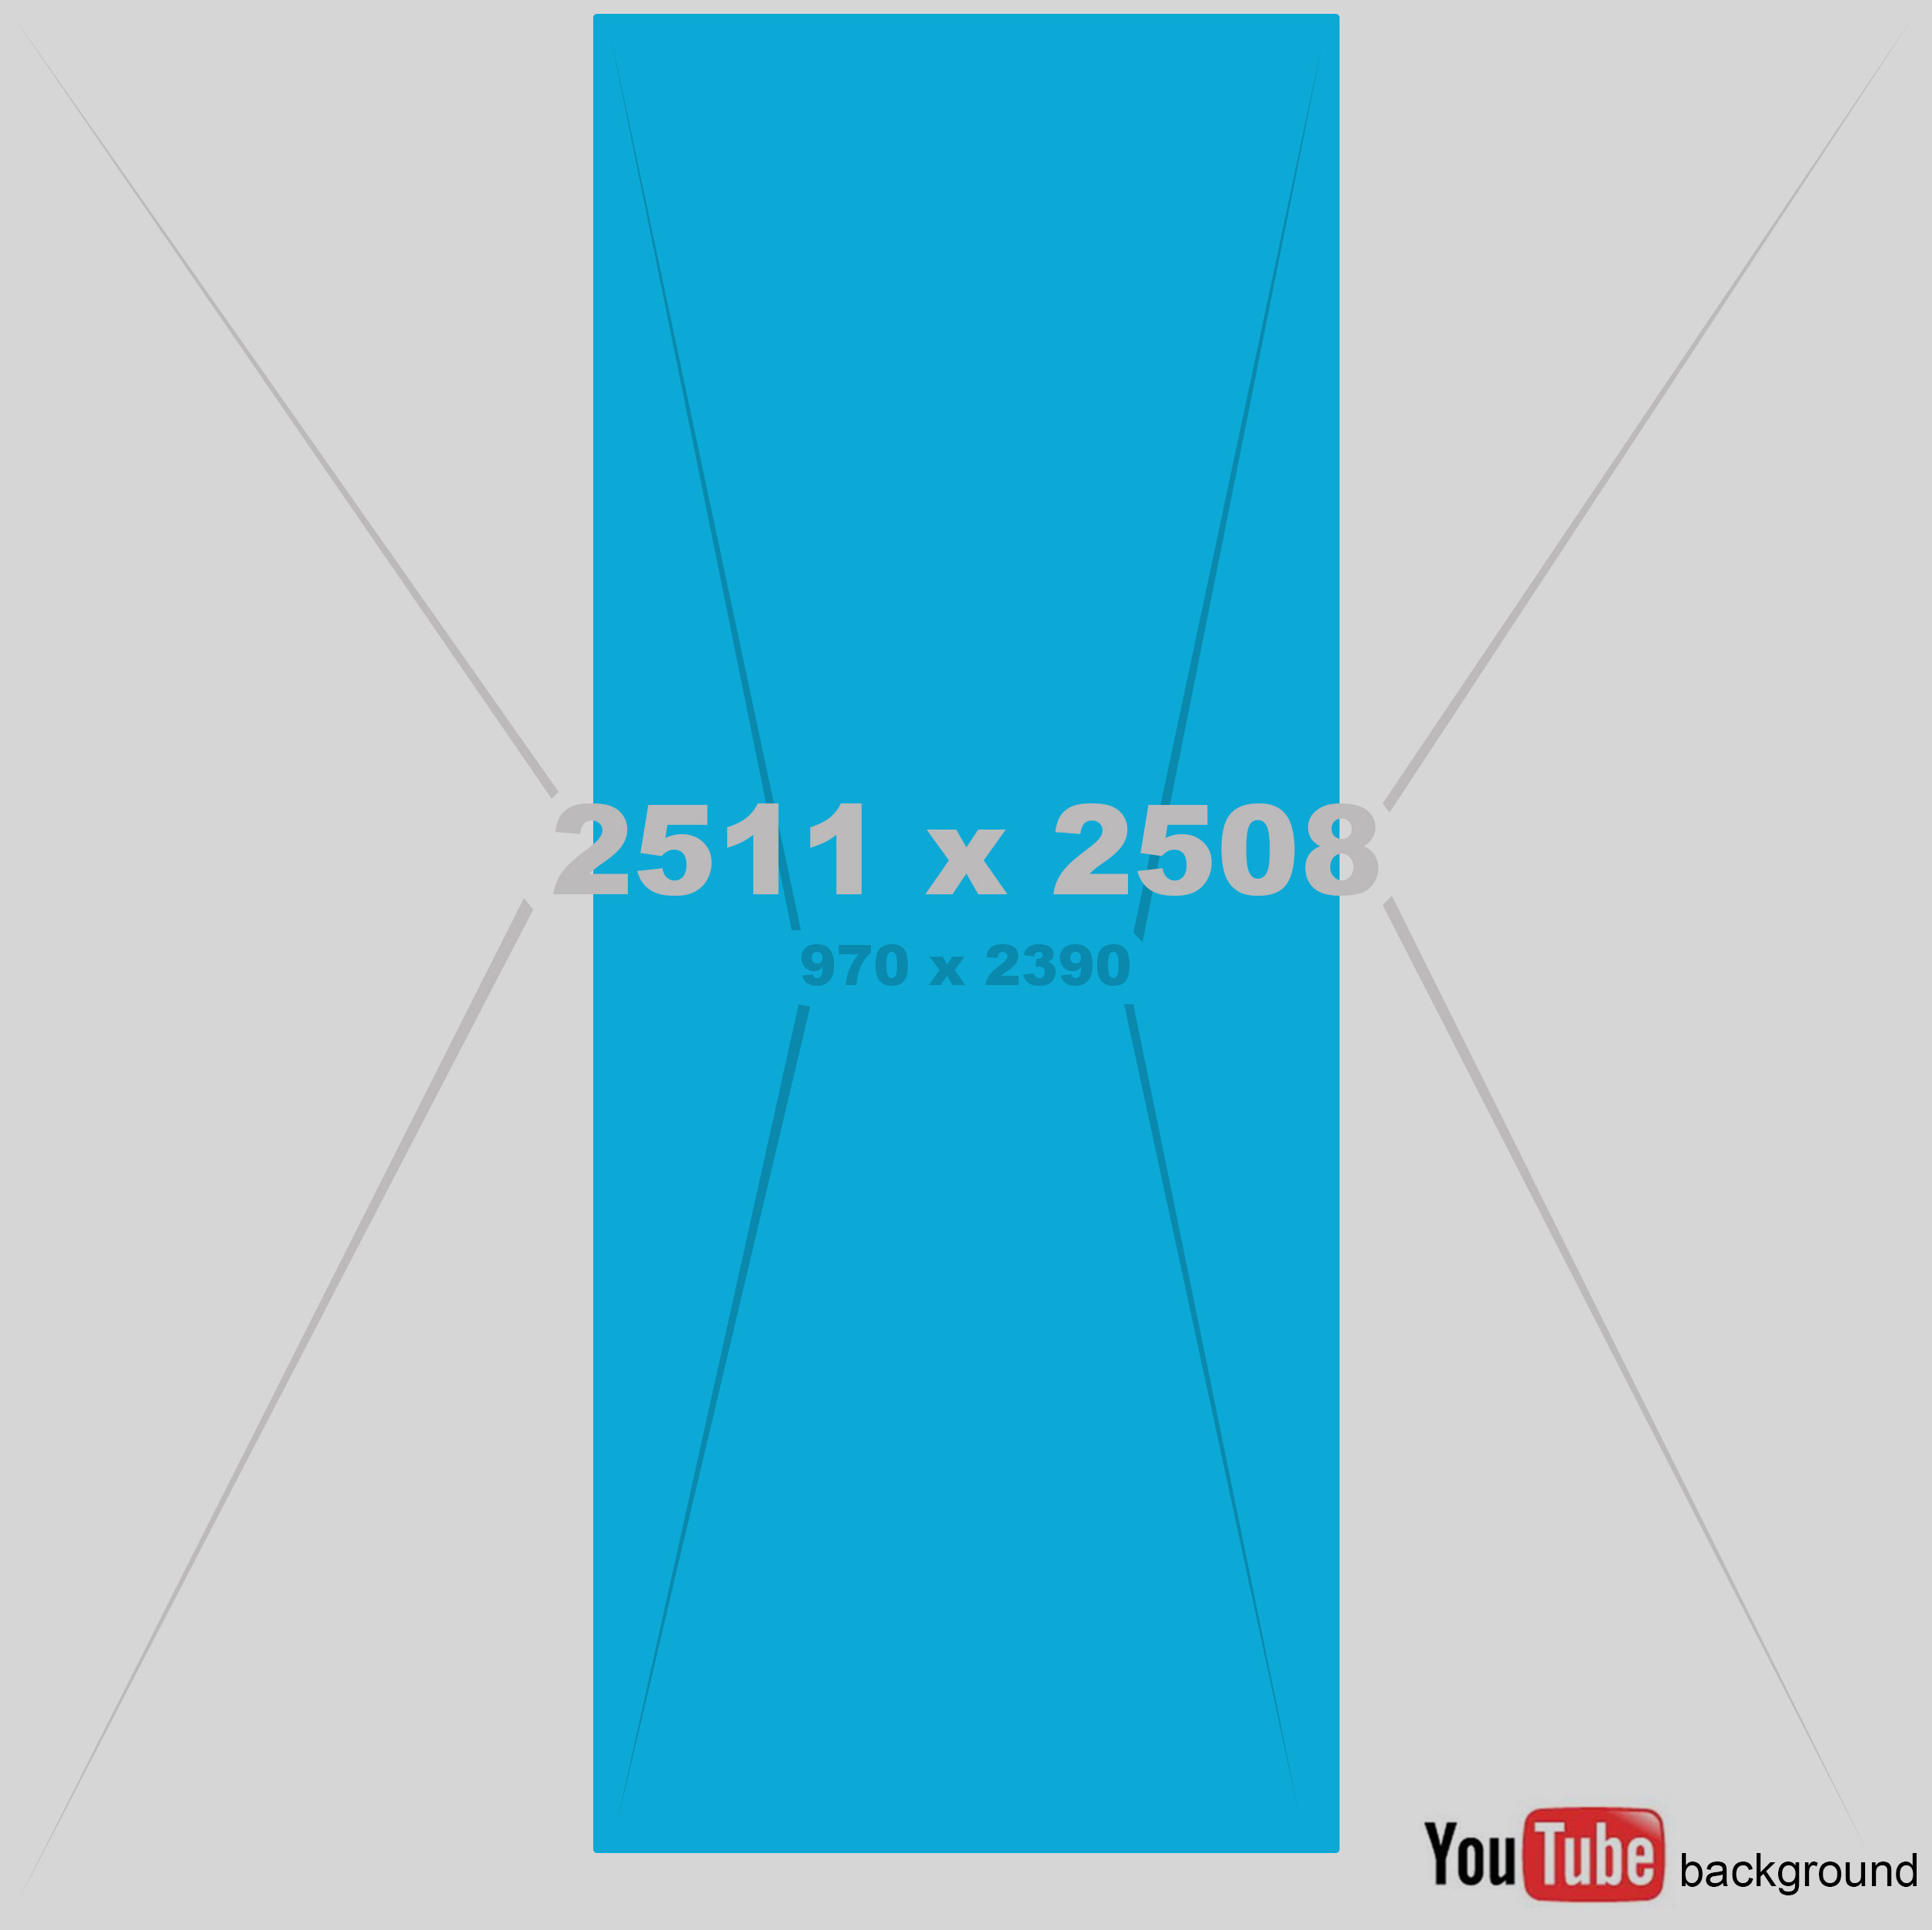 Background image dimensions - The Video Thumbnail Dimensions